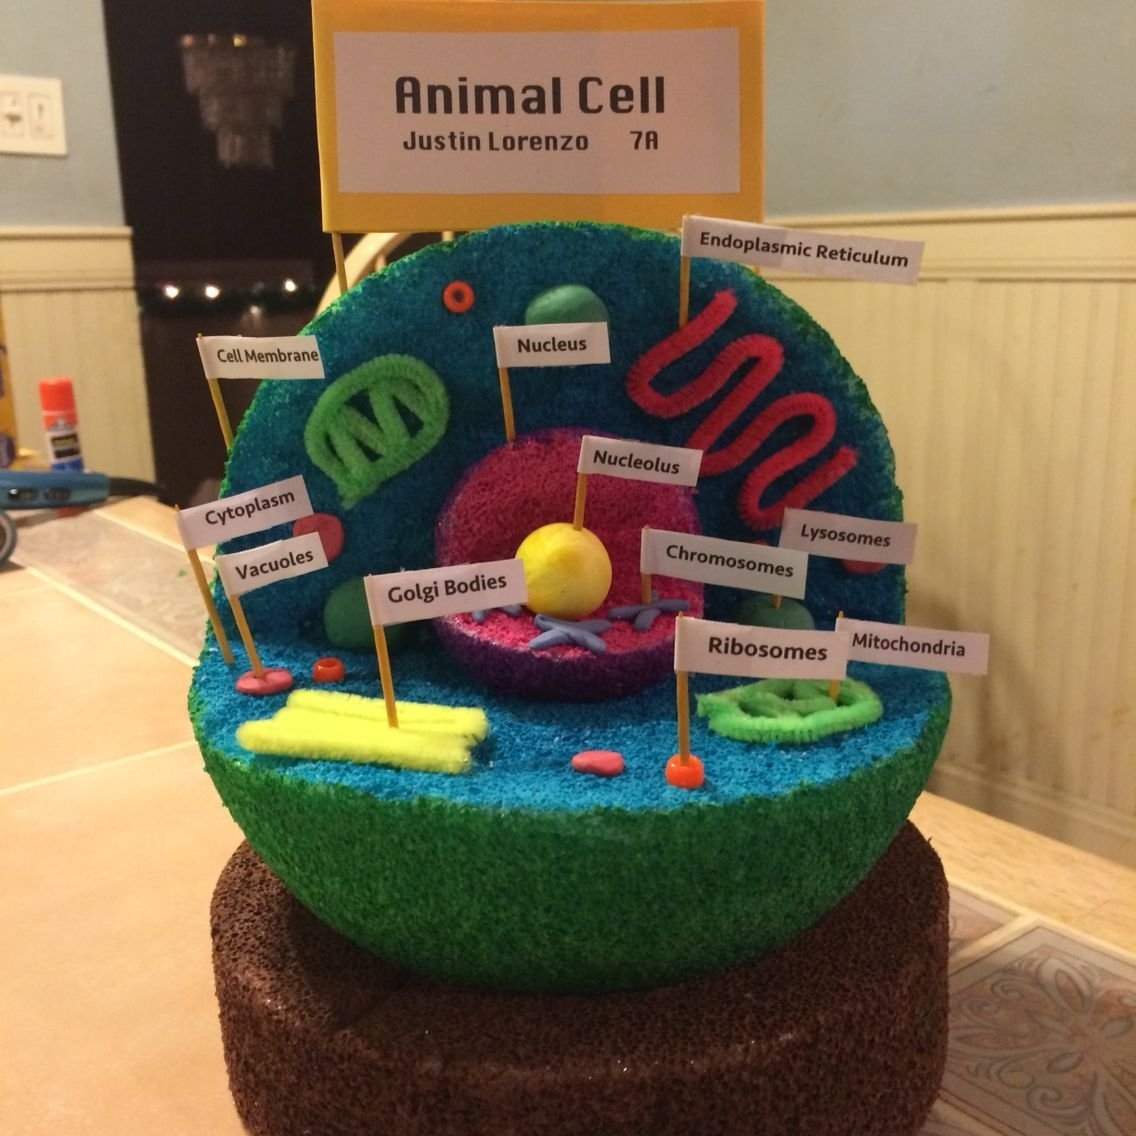 10 Pretty 3D Plant Cell Model Project Ideas image result for animal cell model 7th grade etc pinterest 1 2020